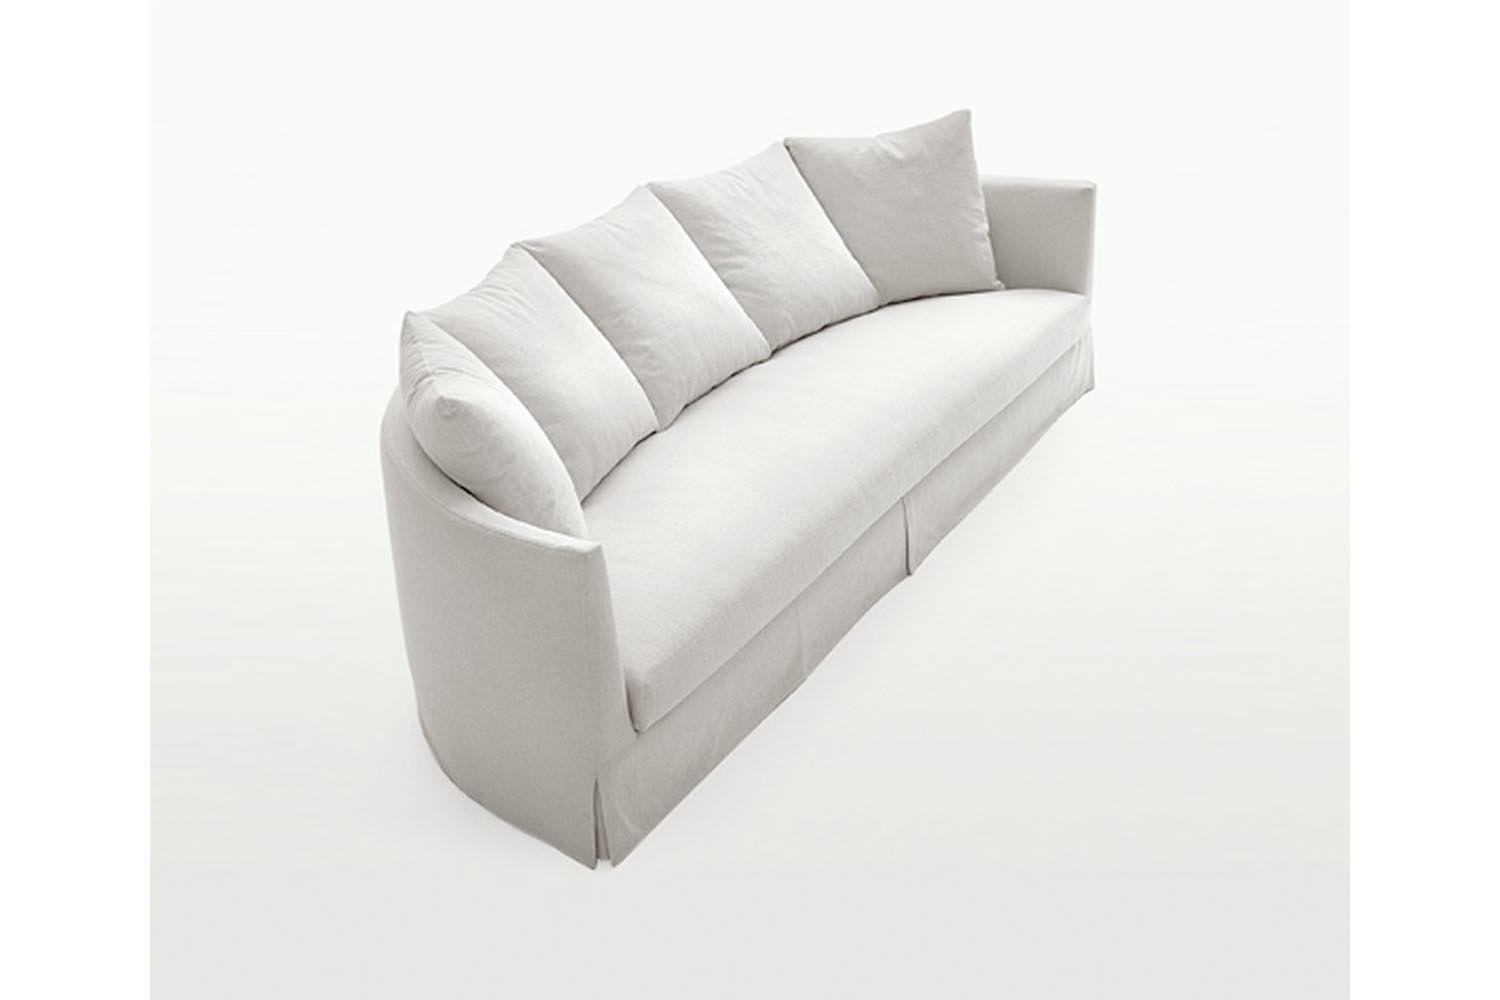 Maxalto Sofa Rund Crono Sofa By Antonio Citterio For Maxalto Space Furniture